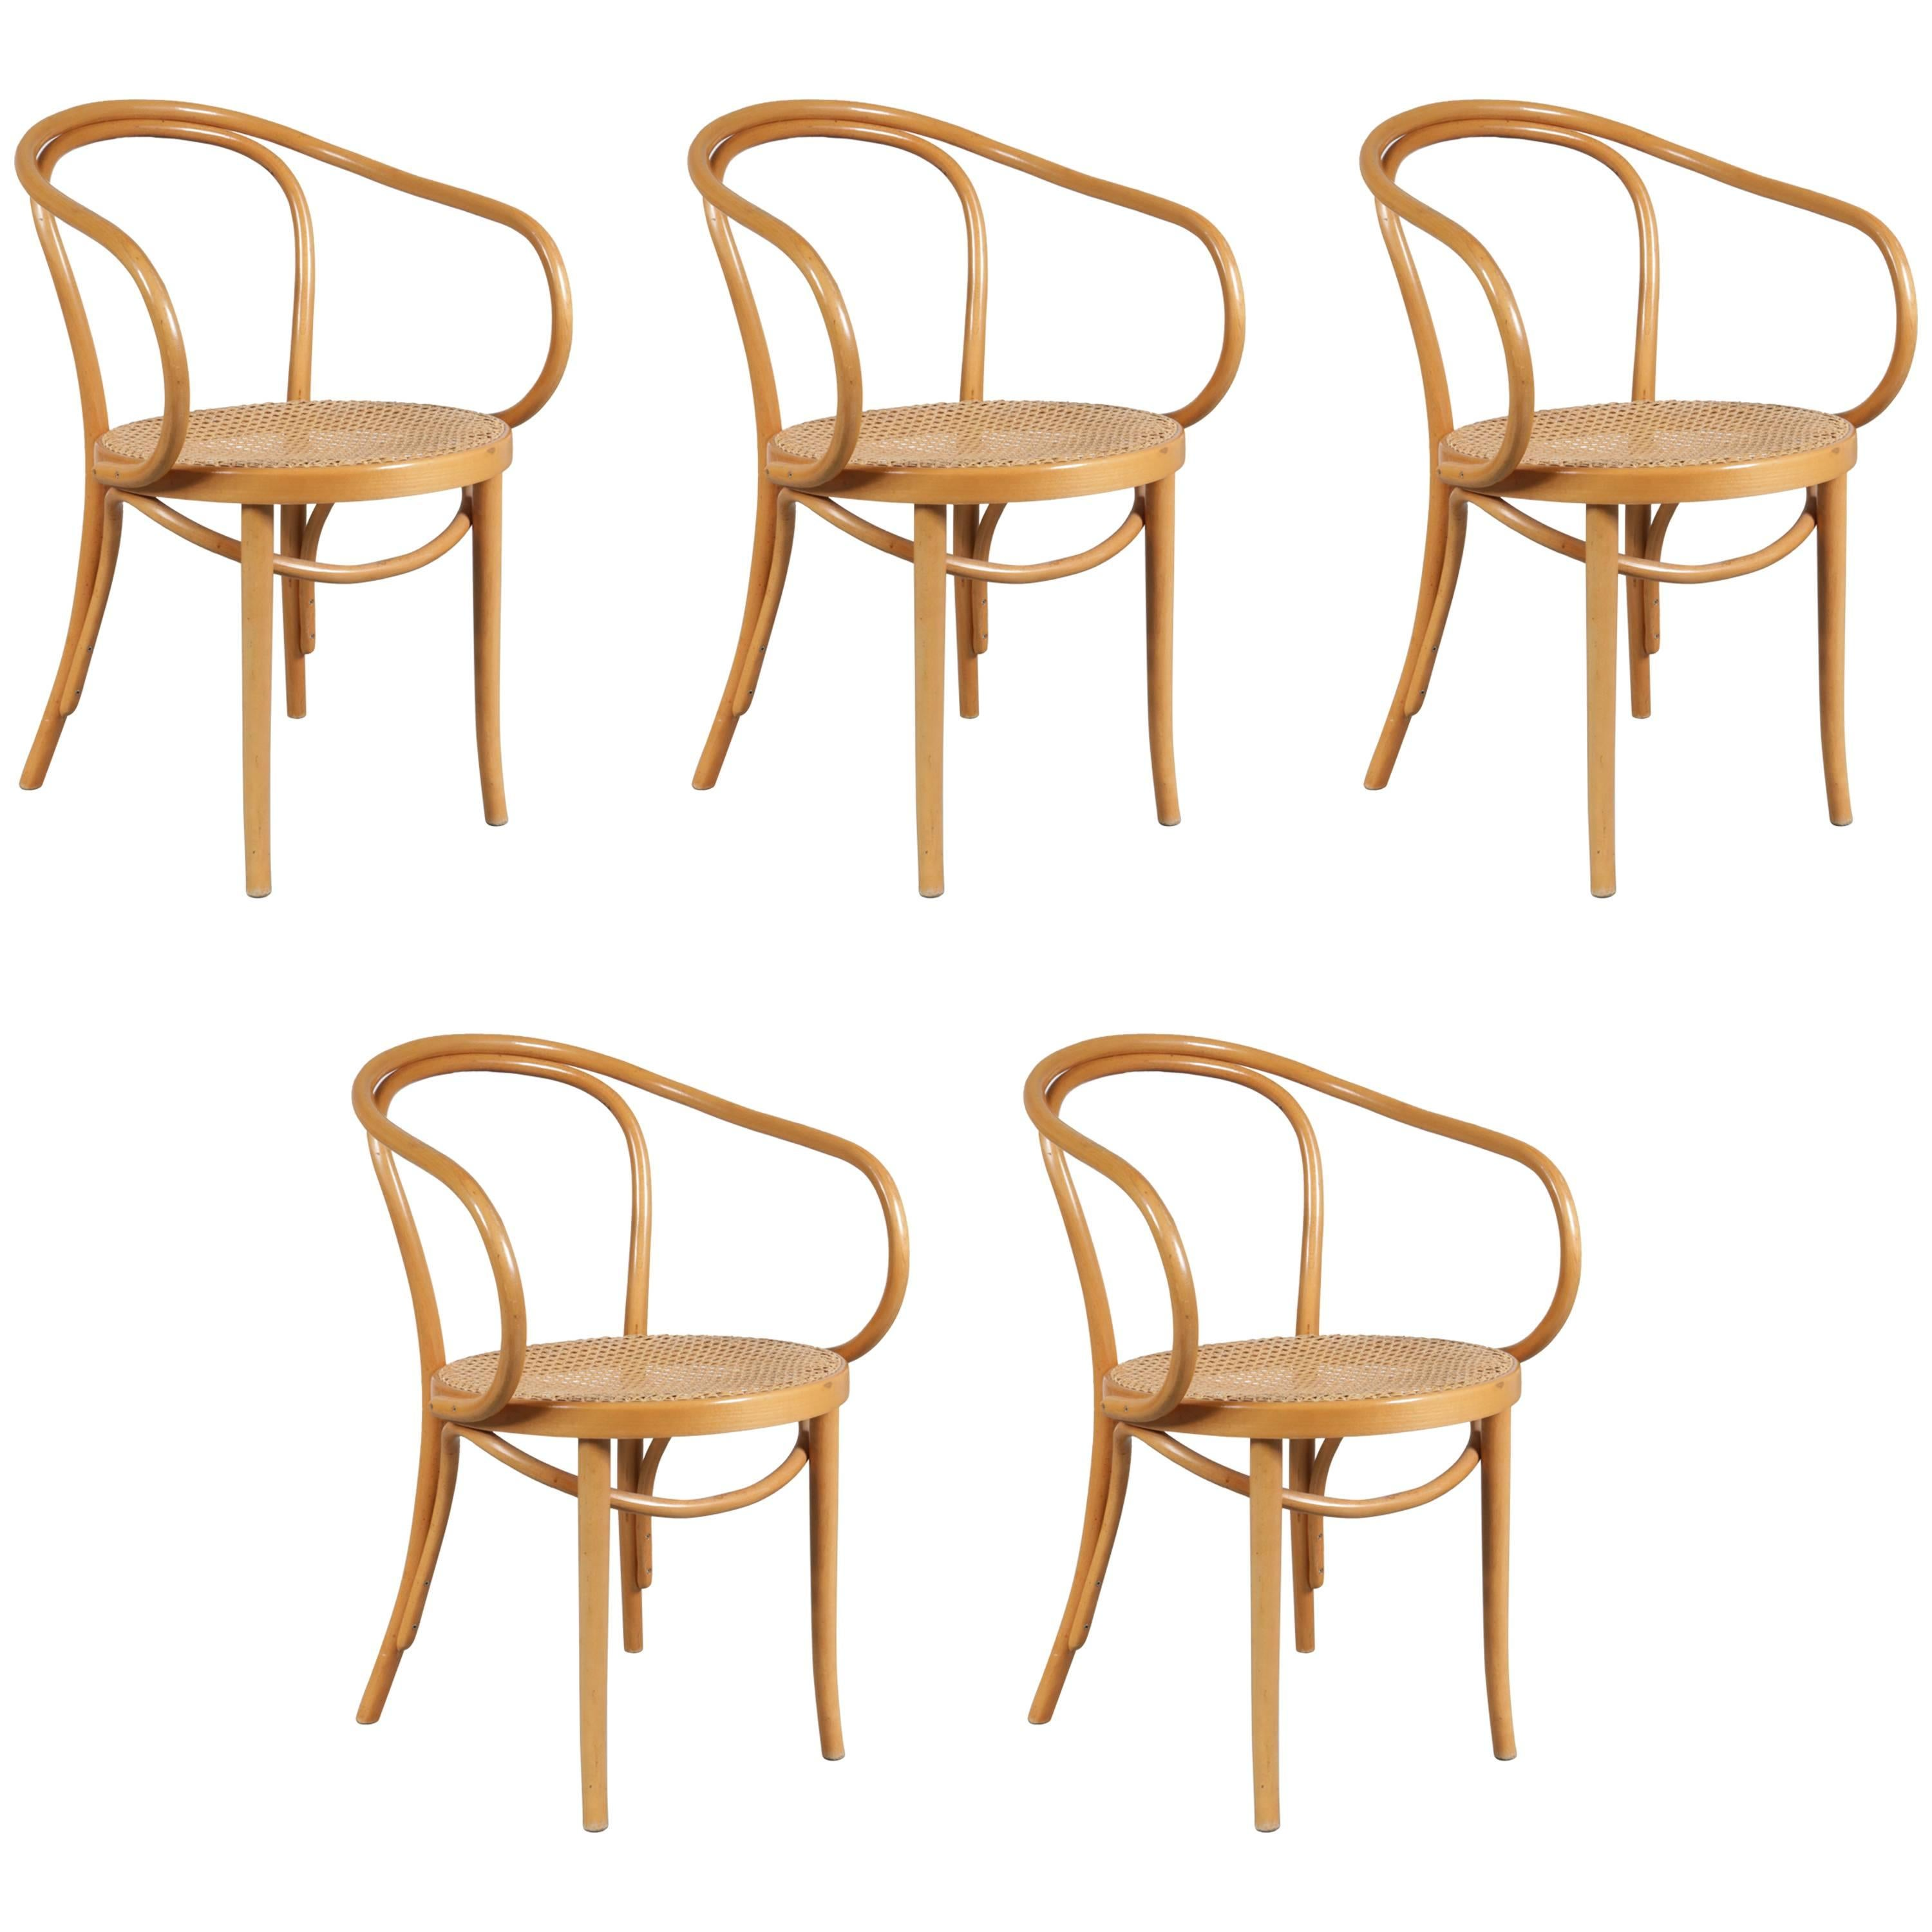 Set Of Five Bentwood Armchairs By Michael Thonet, Germany 1920 For Sale